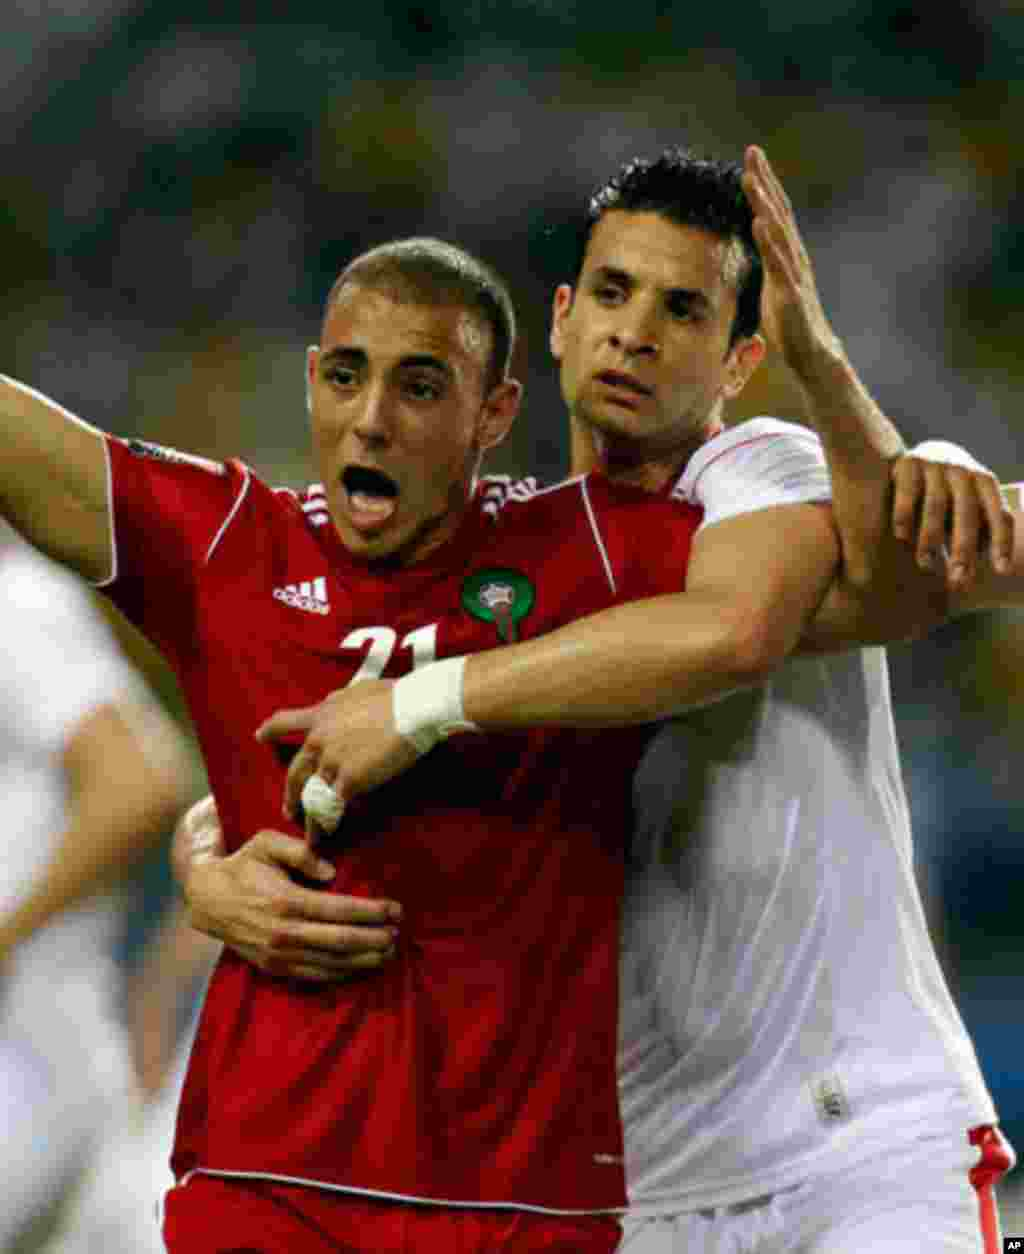 Morocco's Aissam appeals to the referee during their African Cup of Nations soccer match against Tunisia in Libreville